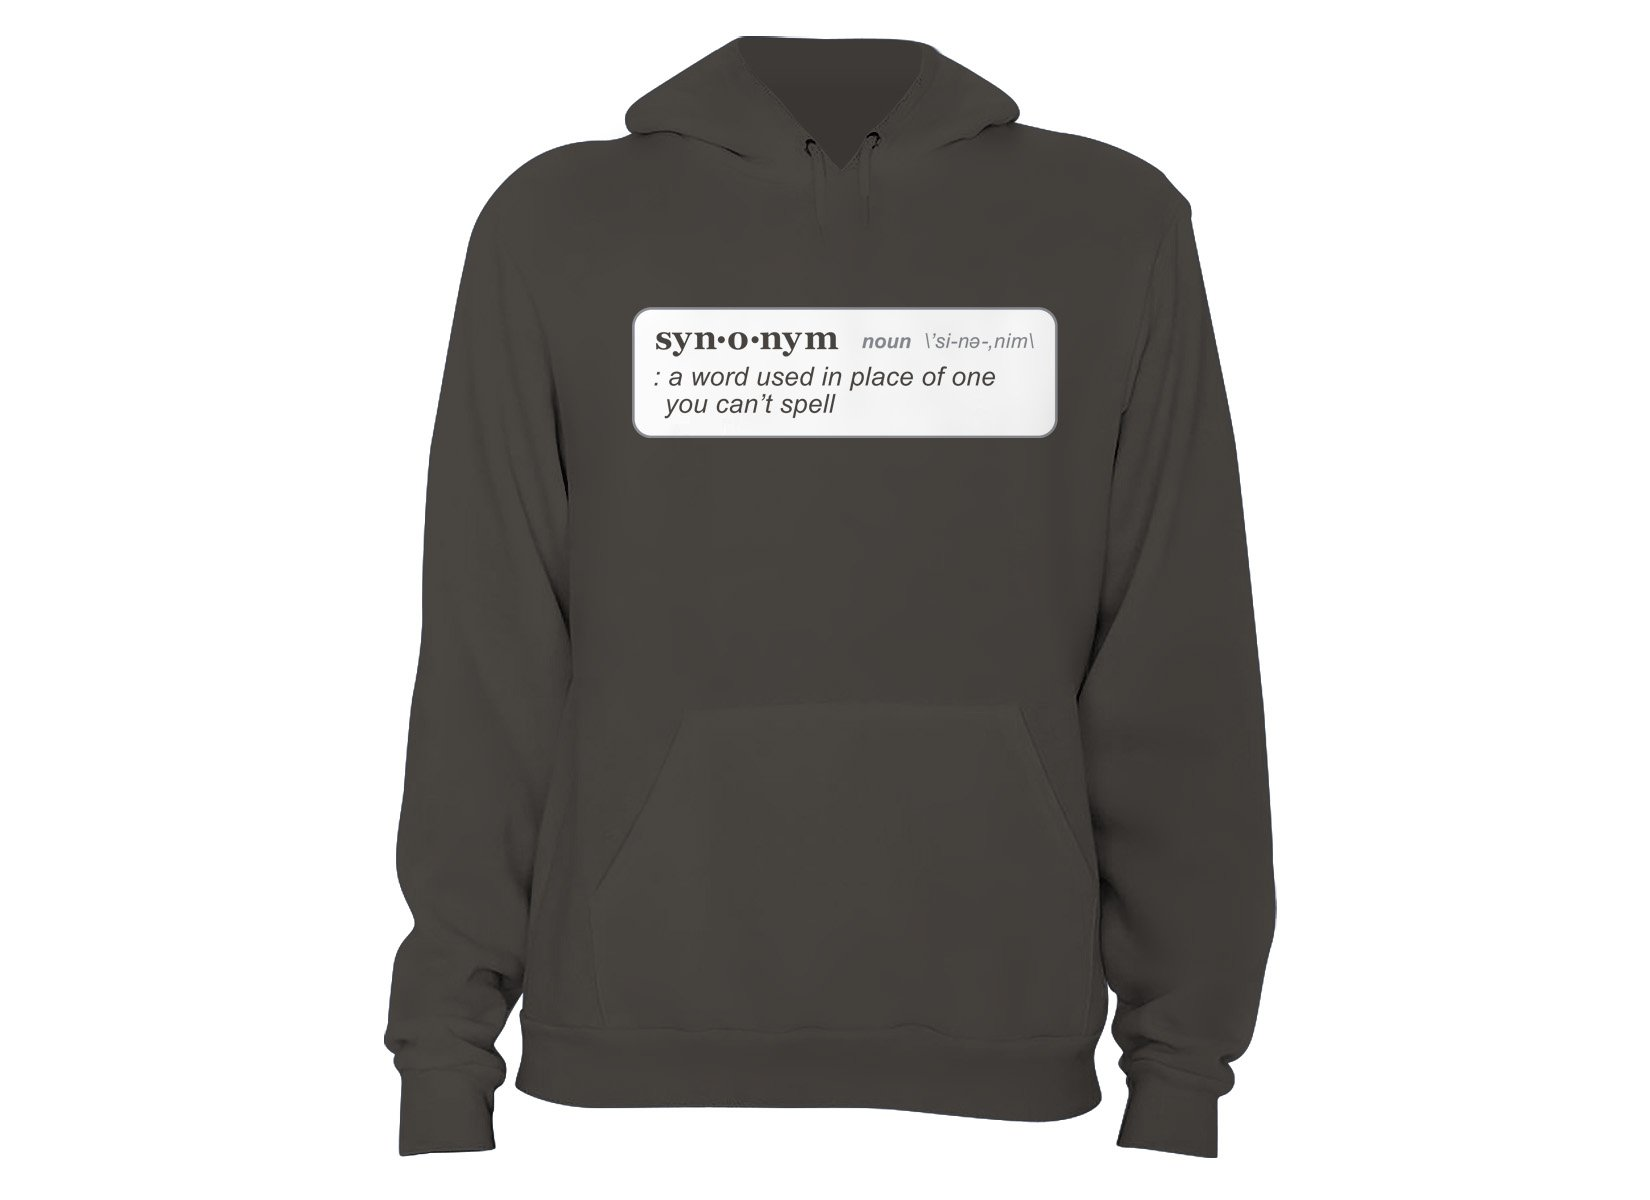 Synonym Definition on Hoodie